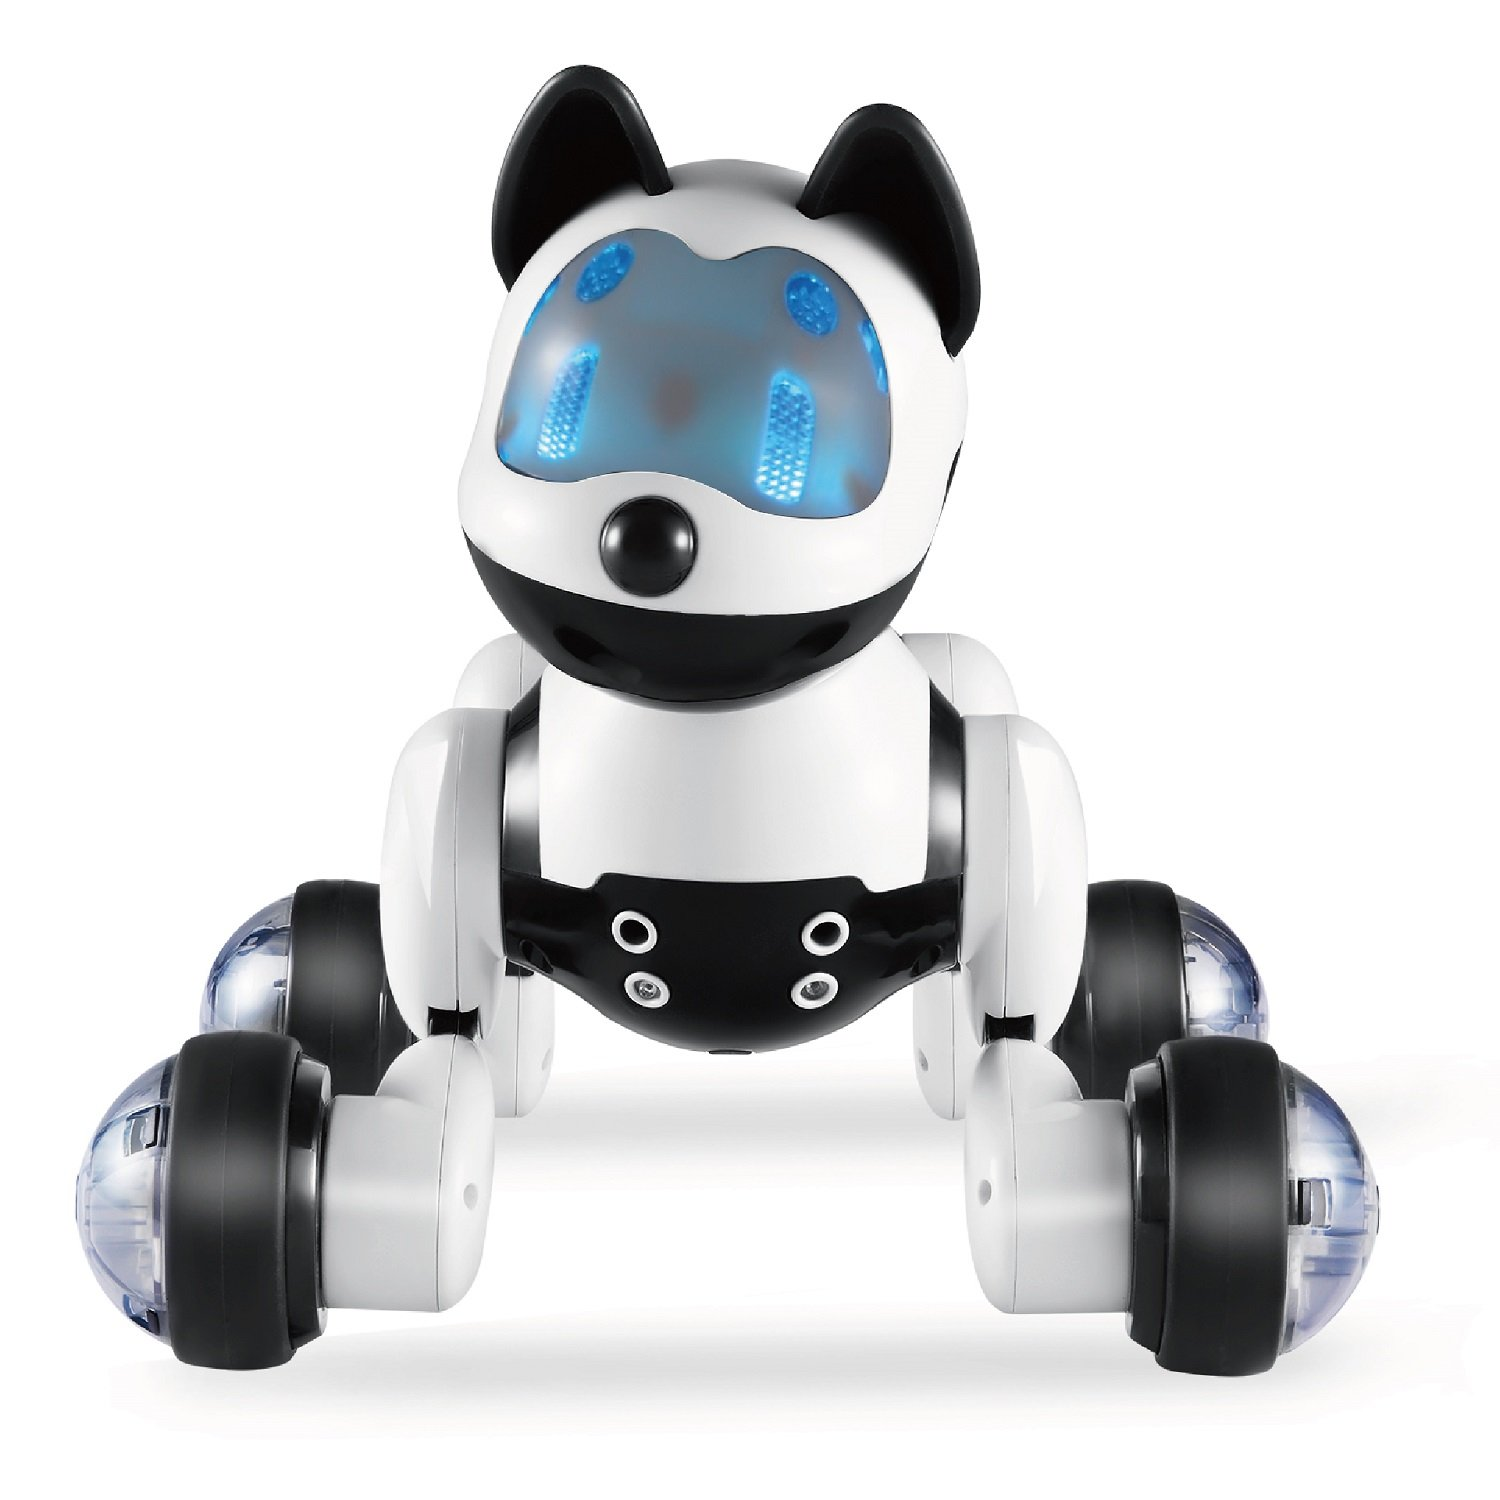 Hi-Tech Wireless Remote Control Robot Dog Smart Interactive Puppy Senses Gesture, Sings, Dances for Boys, Girls, Kids and Children